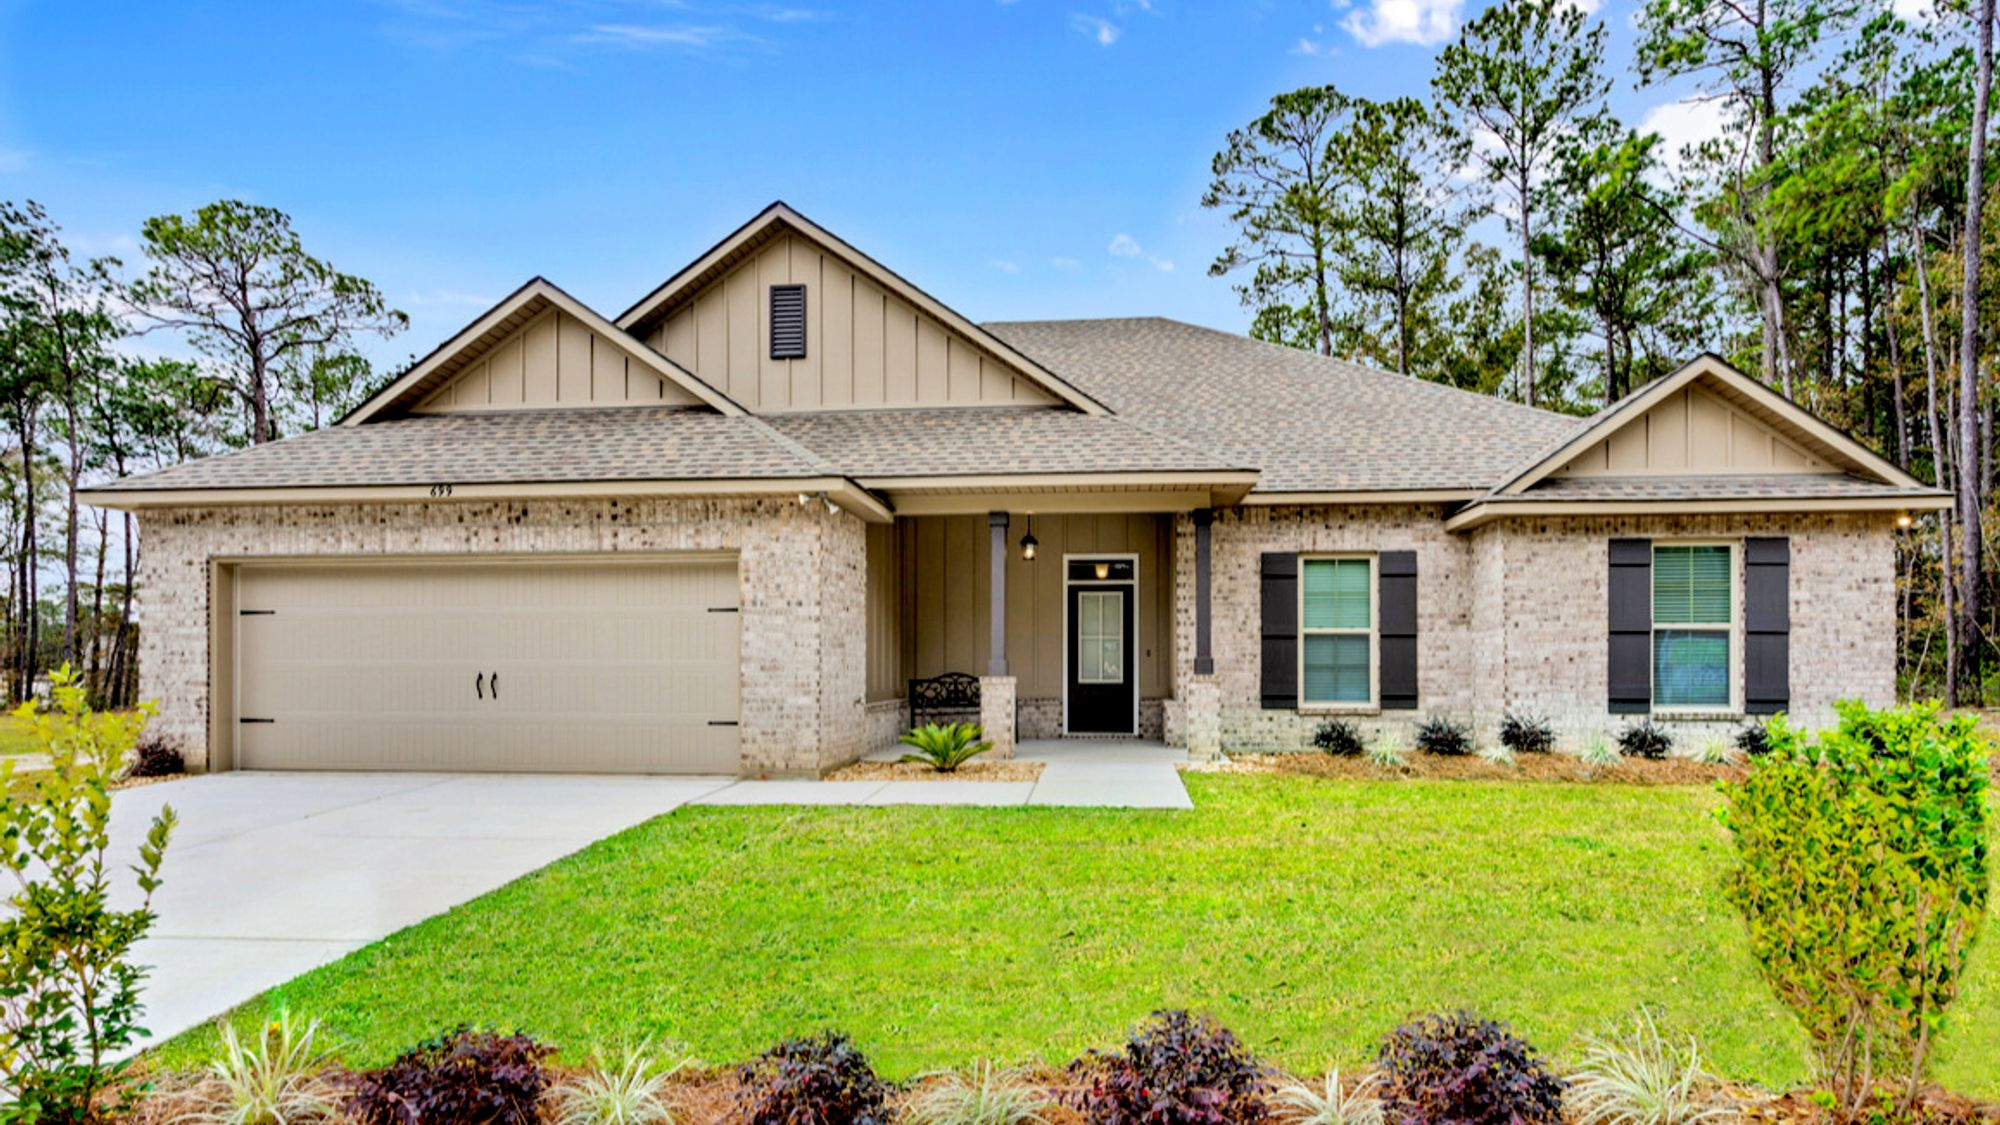 DSLD Homes - Talla Pointe Model Home Exterior Elevation Image